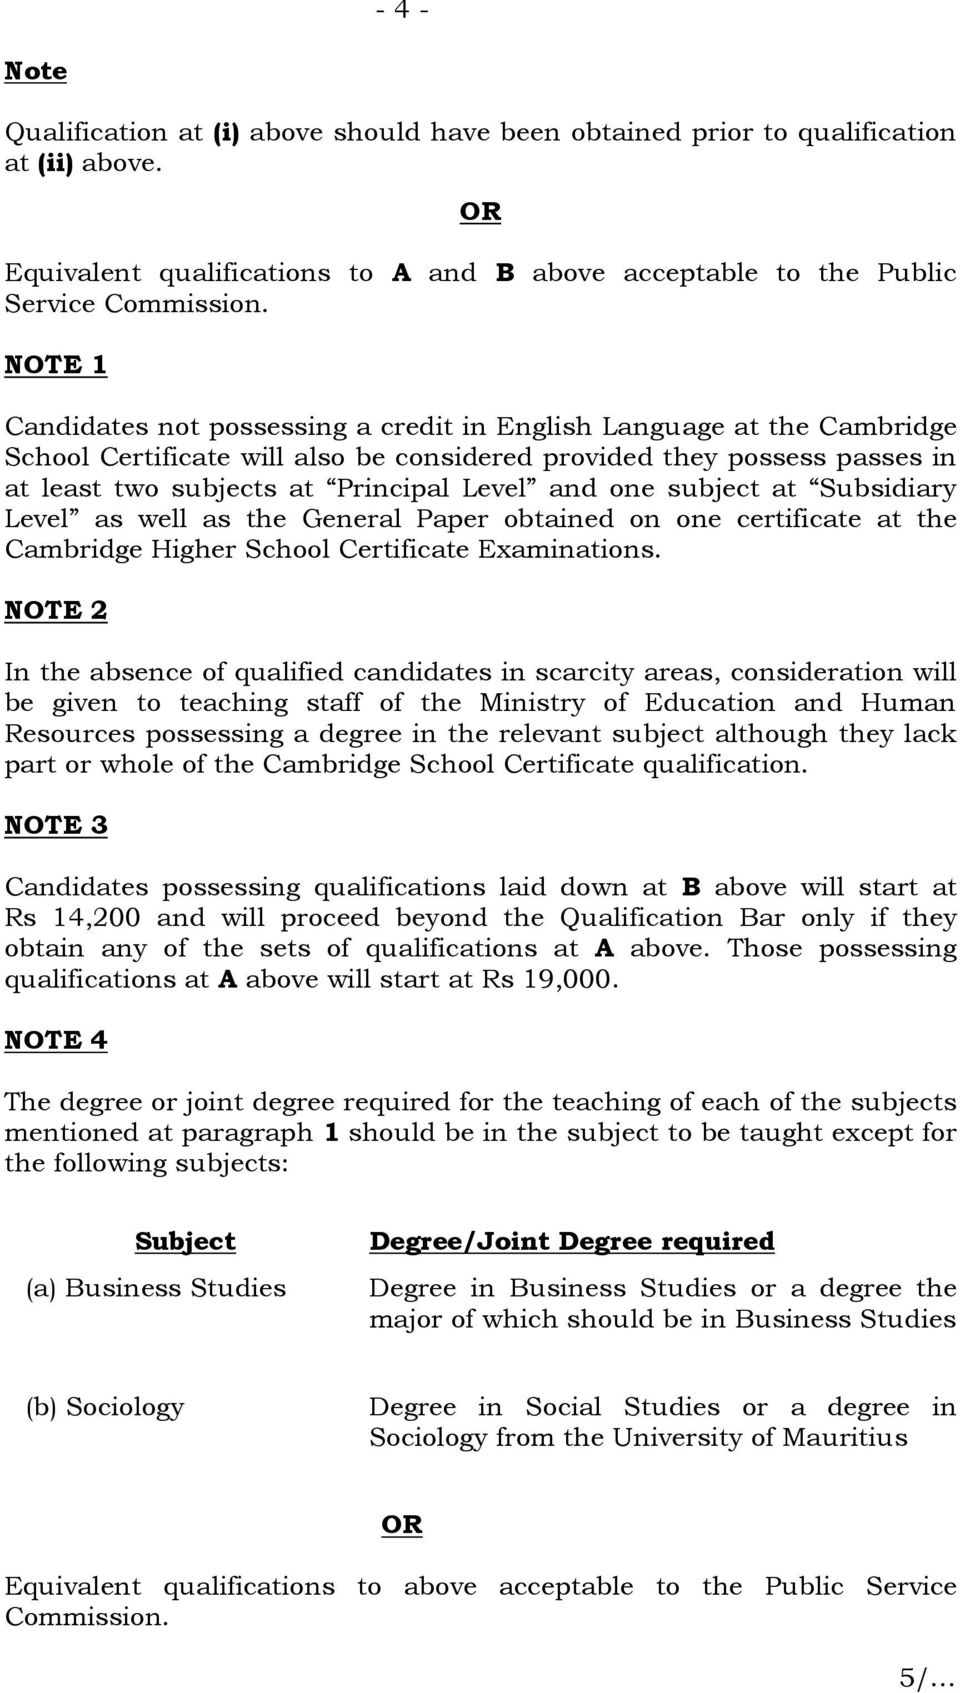 one subject at Subsidiary Level as well as the General Paper obtained on one certificate at the Cambridge Higher School Certificate Examinations.